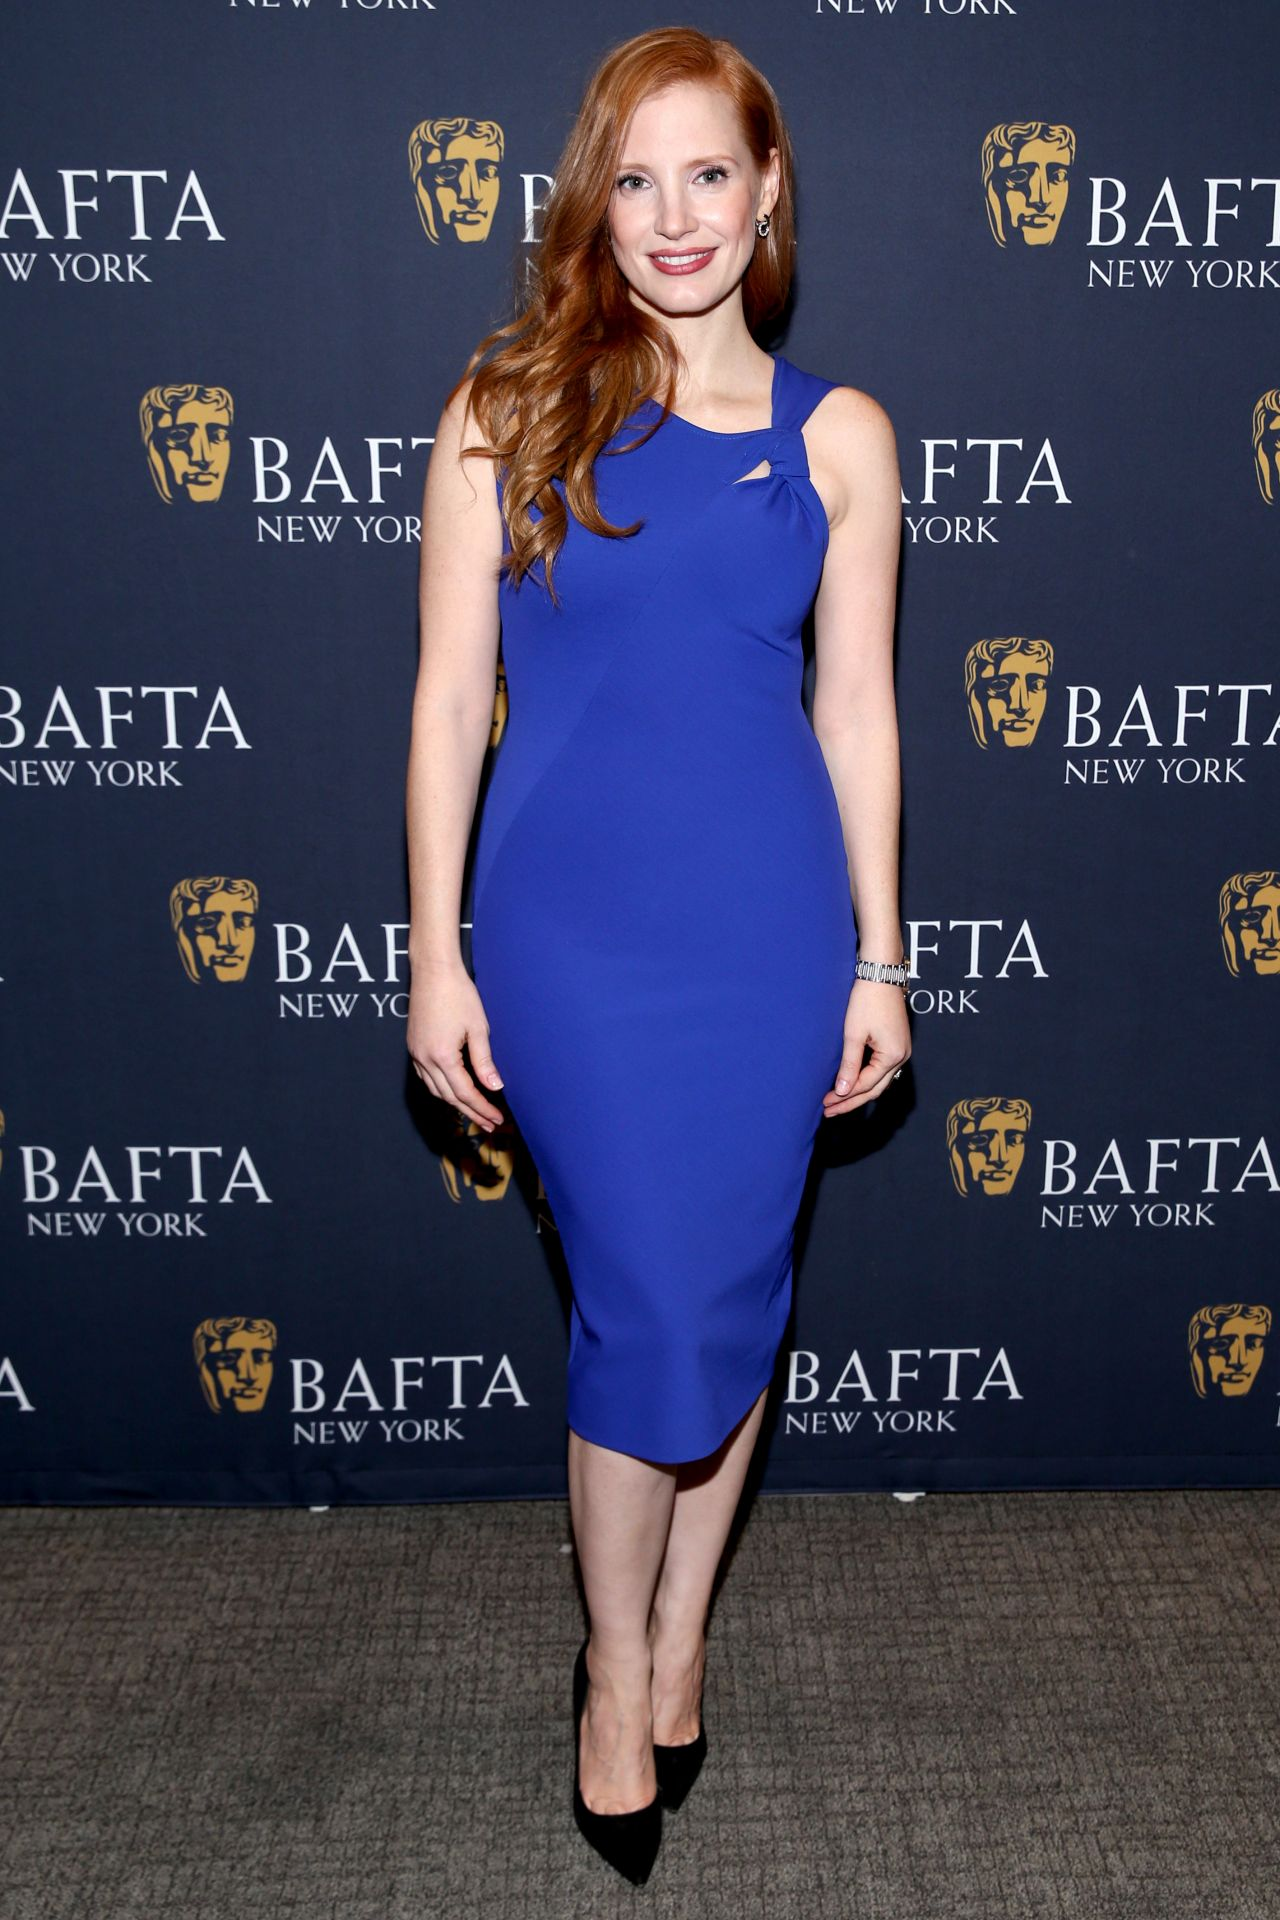 http://celebmafia.com/wp-content/uploads/2017/11/jessica-chastain-molly-s-game-bafta-film-screening-in-nyc-11-18-2017-0.jpg